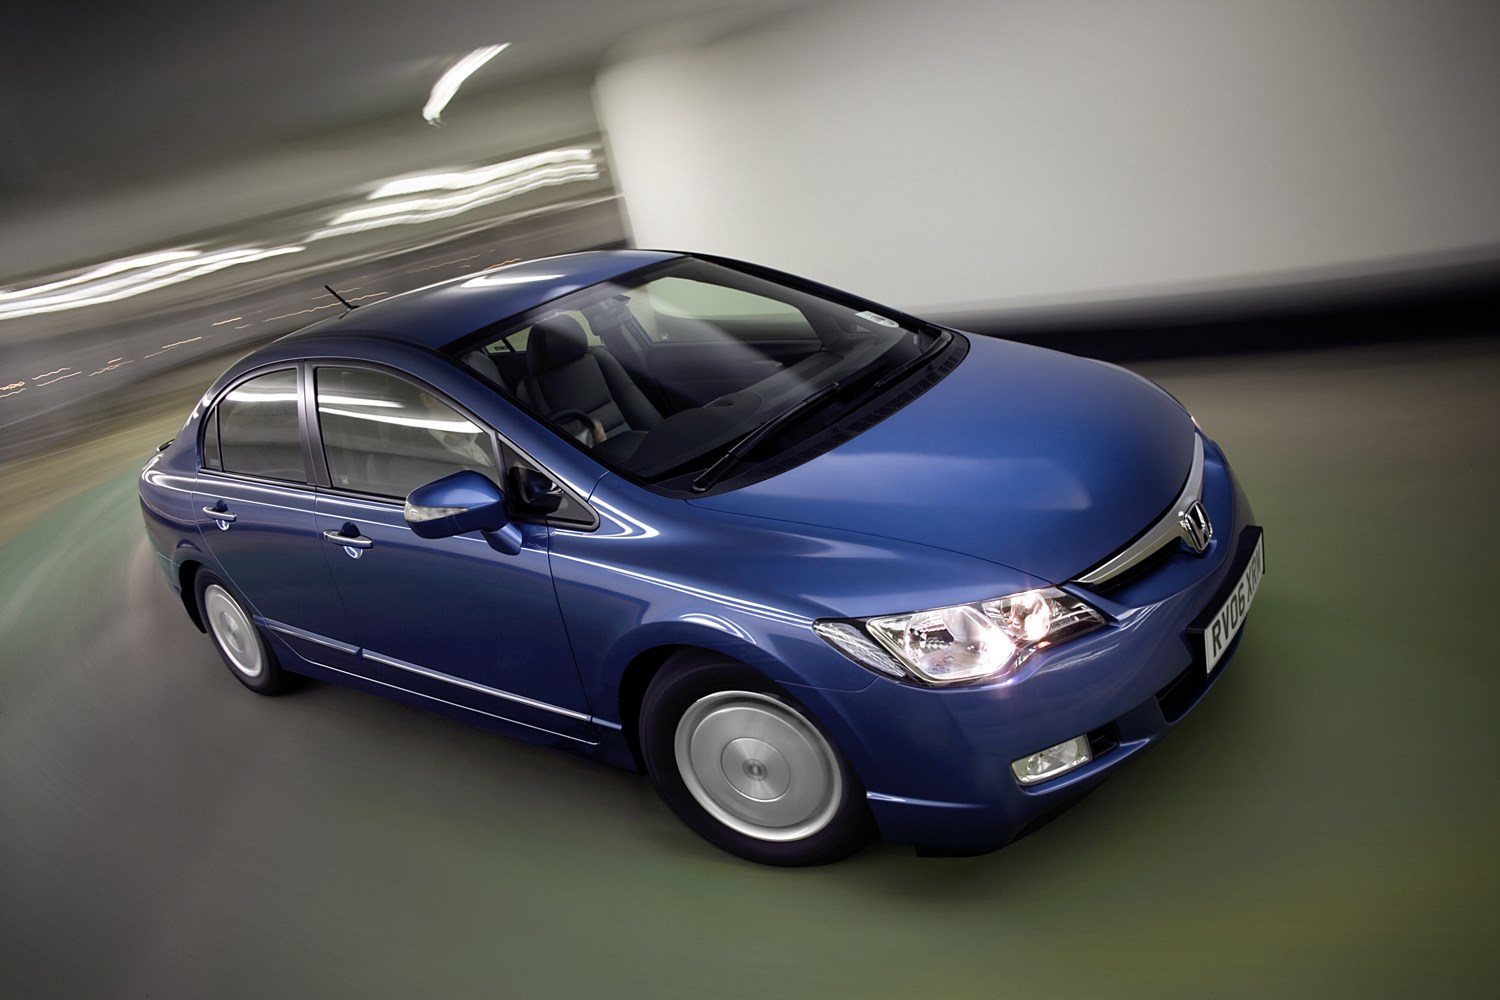 View All Images Of The Honda Civic Hybrid Saloon 06 10